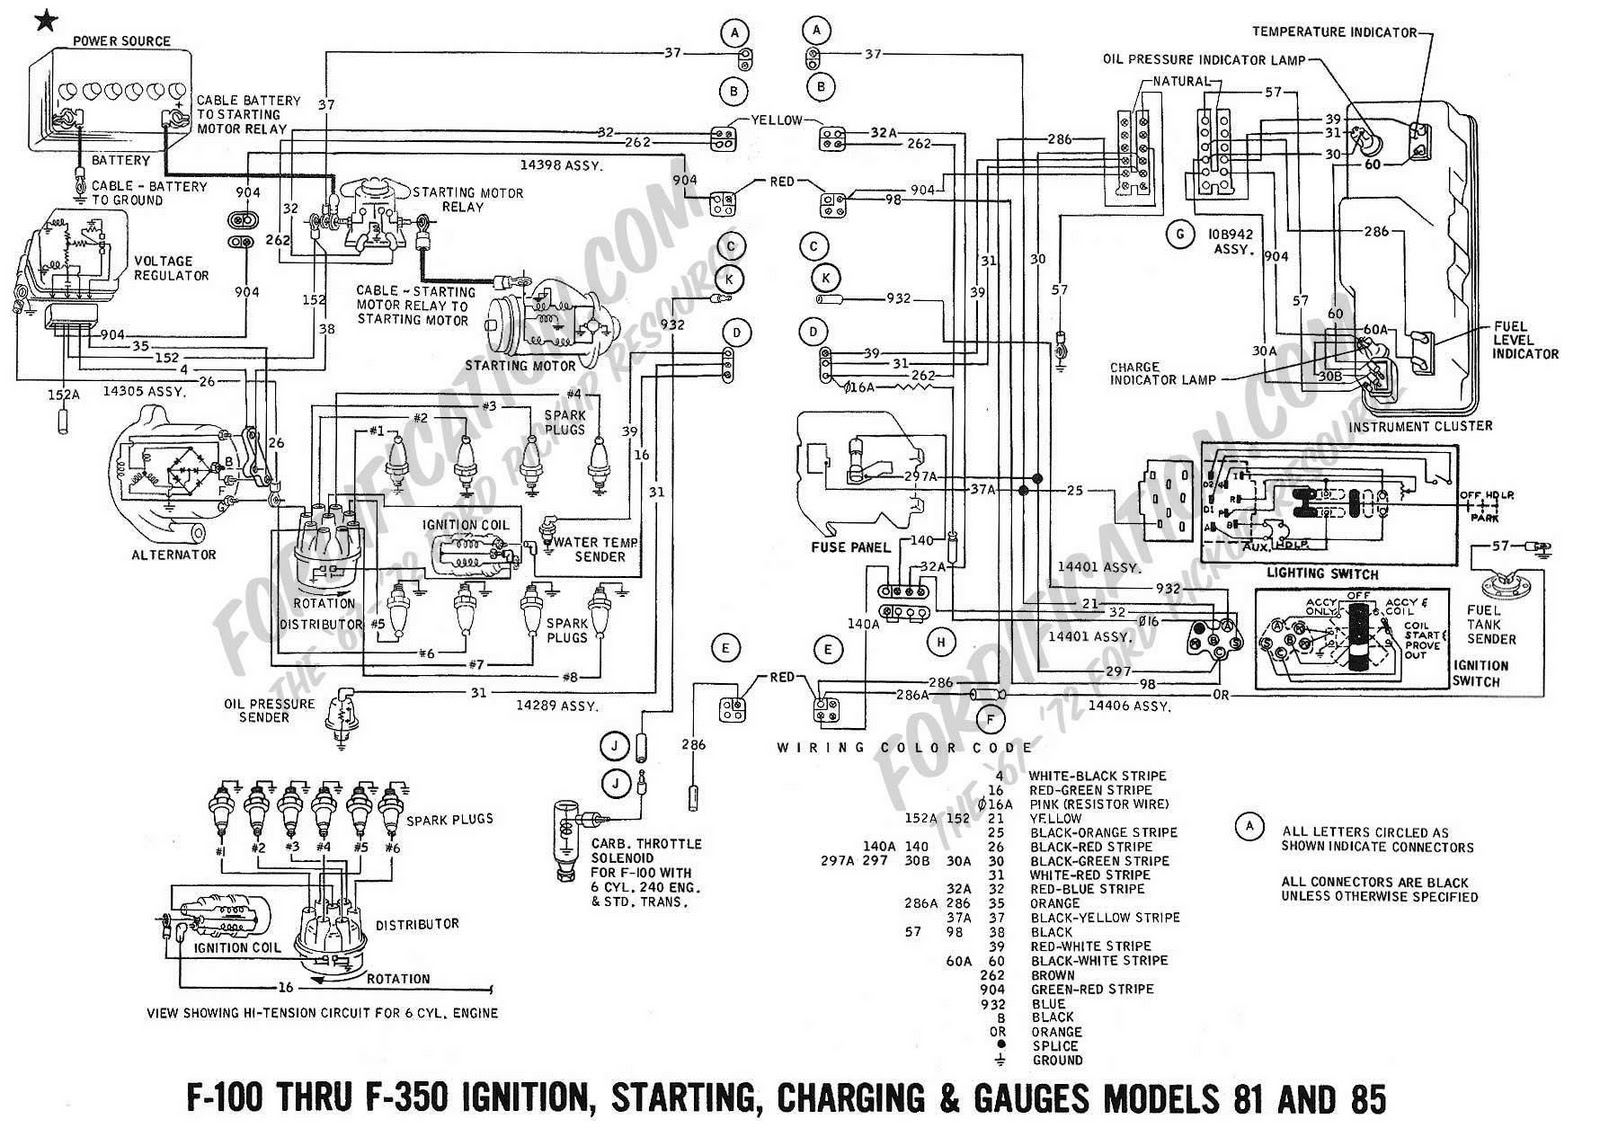 1970 Ford Ignition Wiring - Wiring Diagram & Cable Management Falcon Ignition Switch Wiring Diagram on